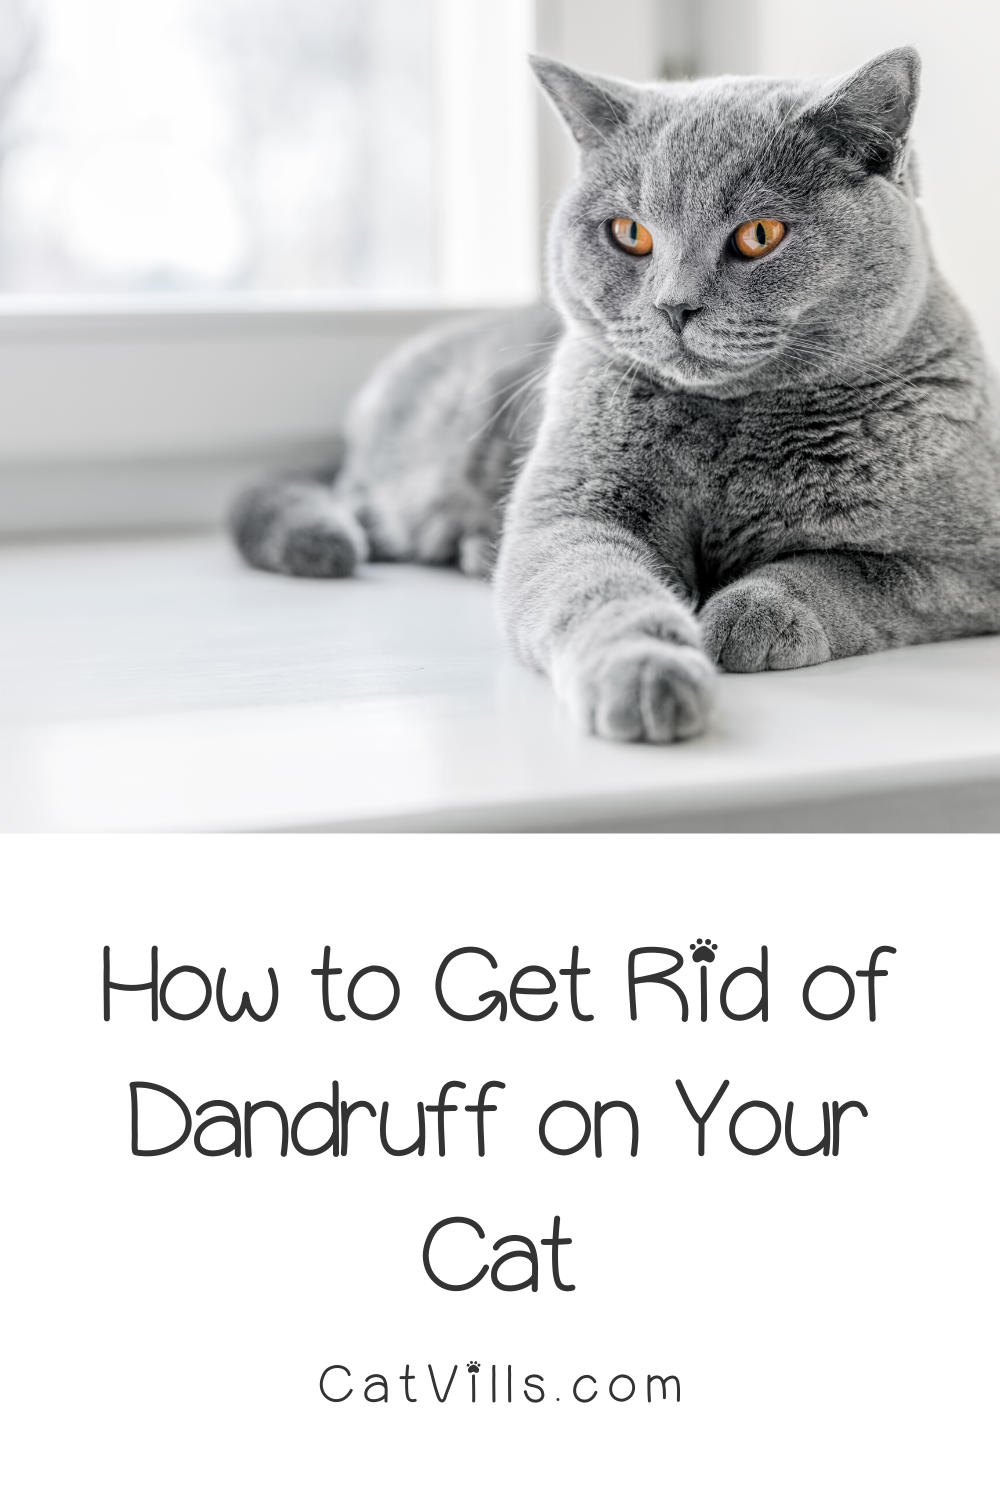 6 Easy Ways To Get Rid Of Dandruff On Your Cat Catvills In 2020 Cats Cat Care Cat Dandruff